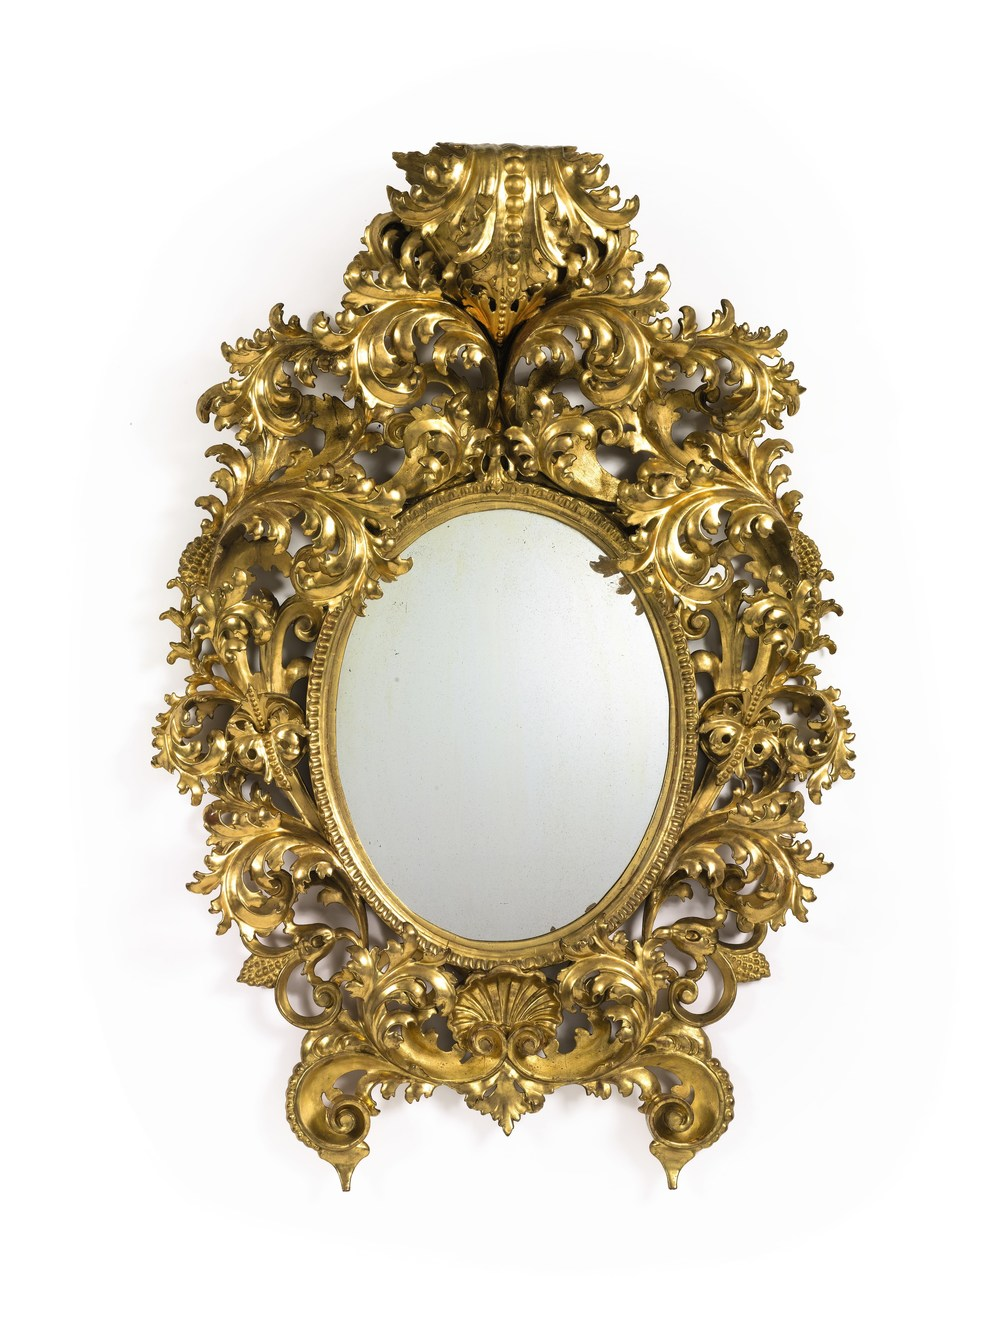 An Italian rococo style carved giltwood mirror from the 19th Century. Estimate: $15,000 to $25,000. (Photo credit: Courtesy of Sotheby's)